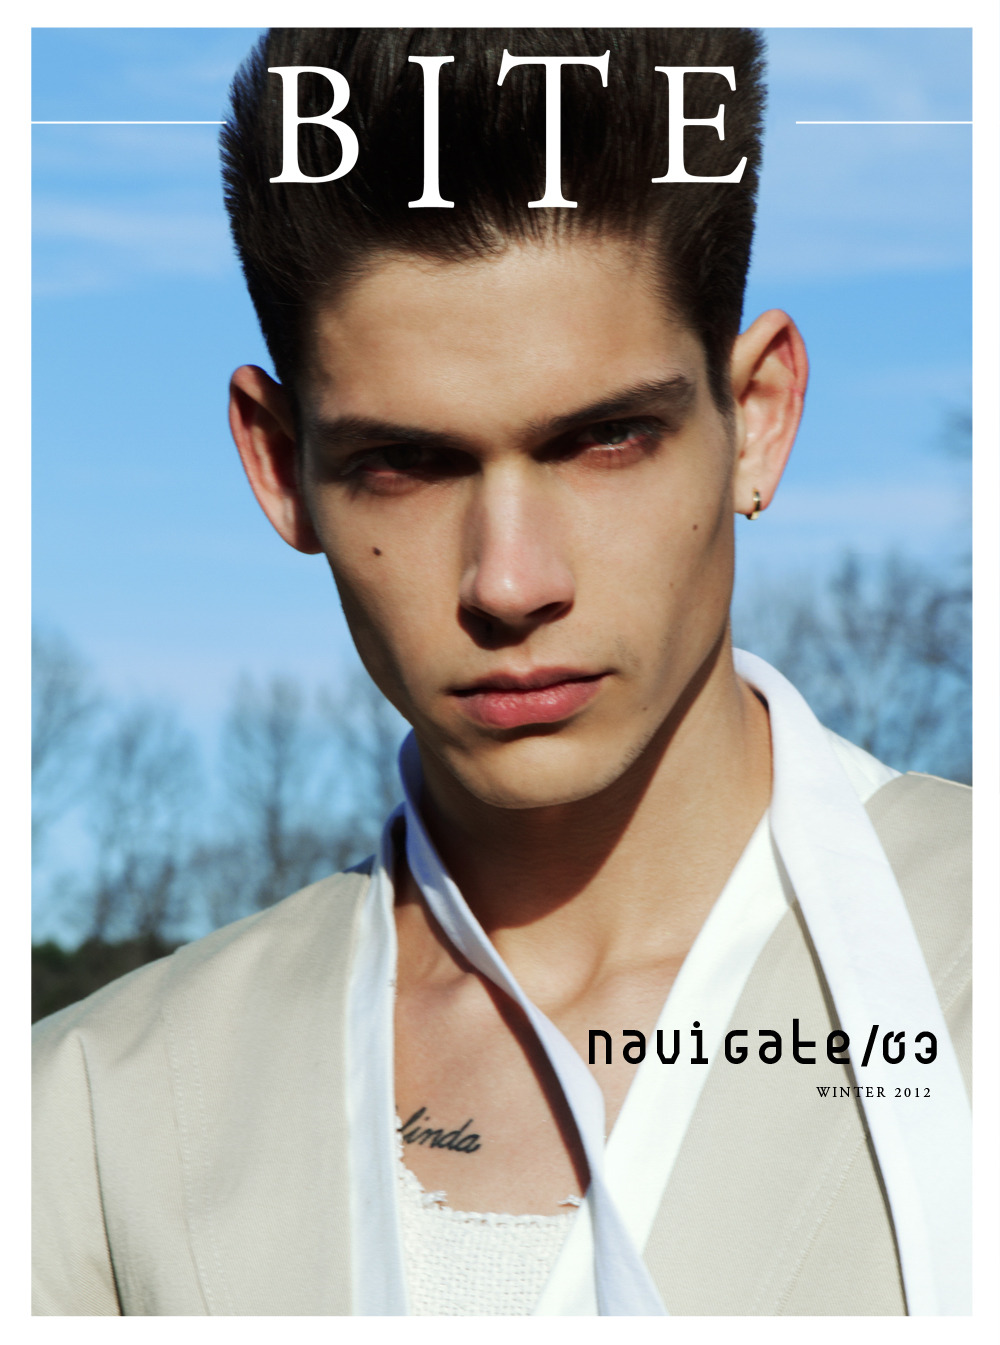 Ethan James for BITE Magazine.  Issue 03.  Navigate.